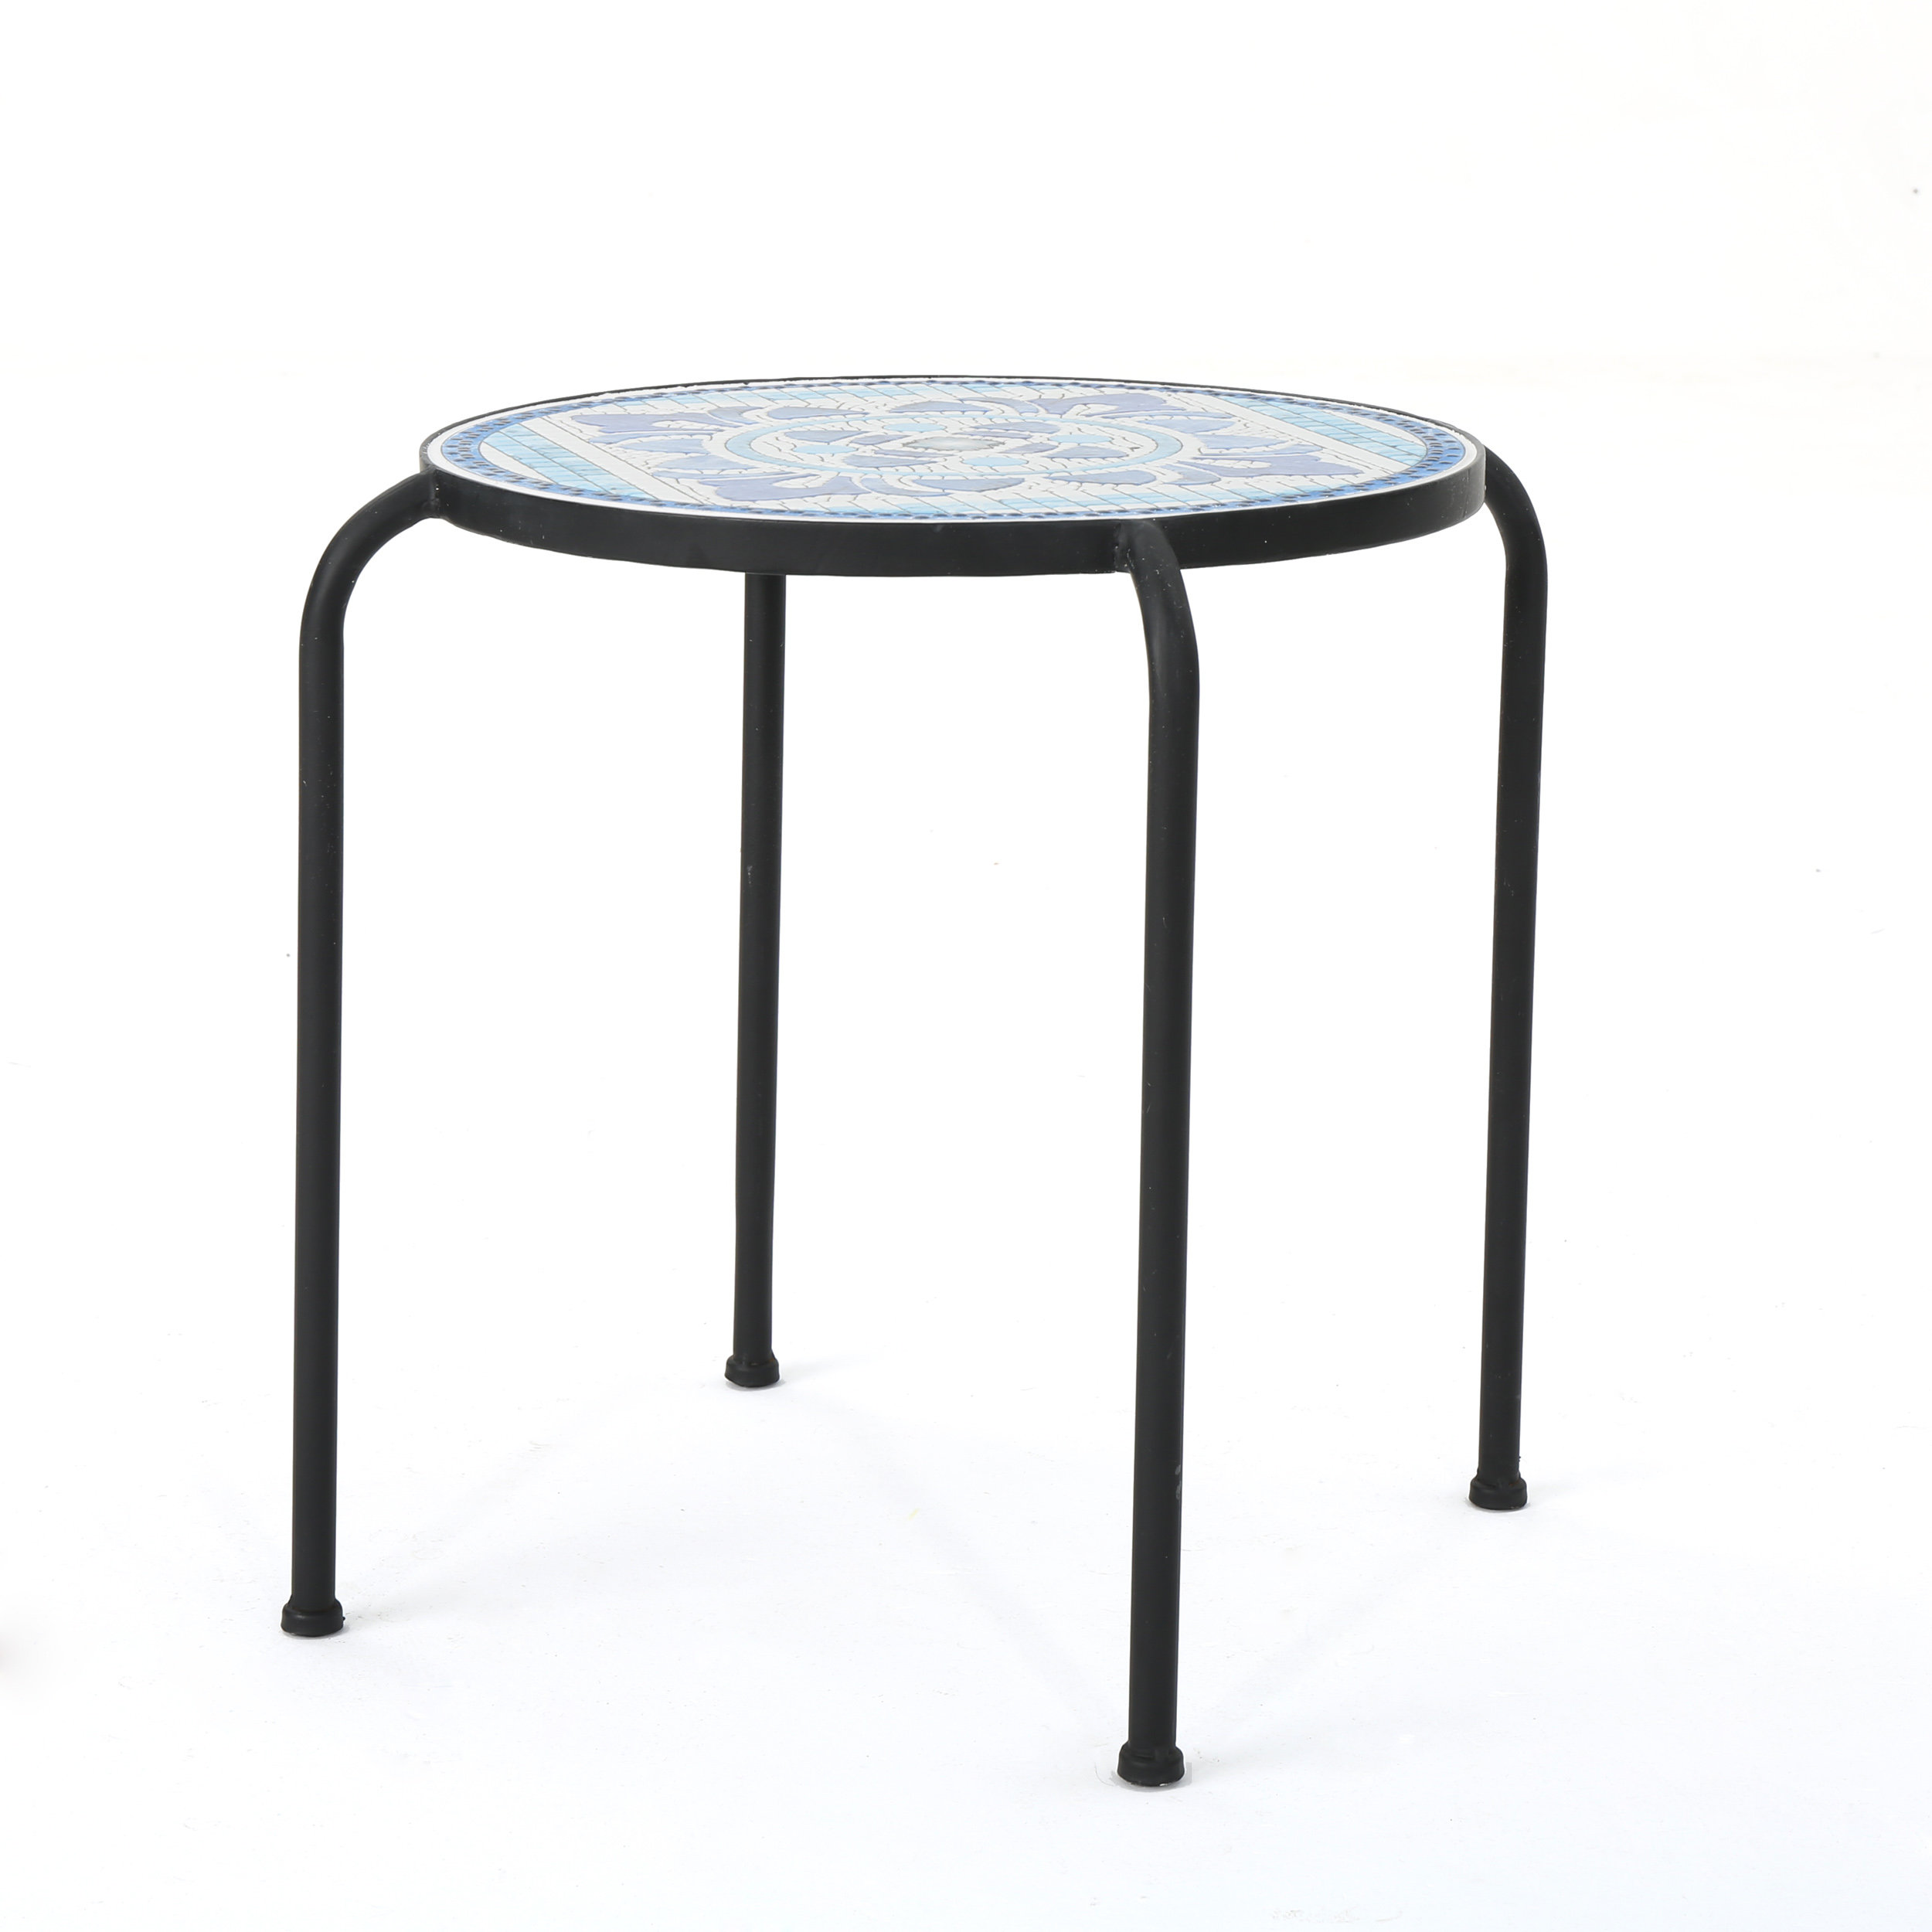 lark manor hayley outdoor side table reviews accent black coffee for sectional kitchen hardware pulls modern concrete door threshold cover round patio with umbrella hole vintage